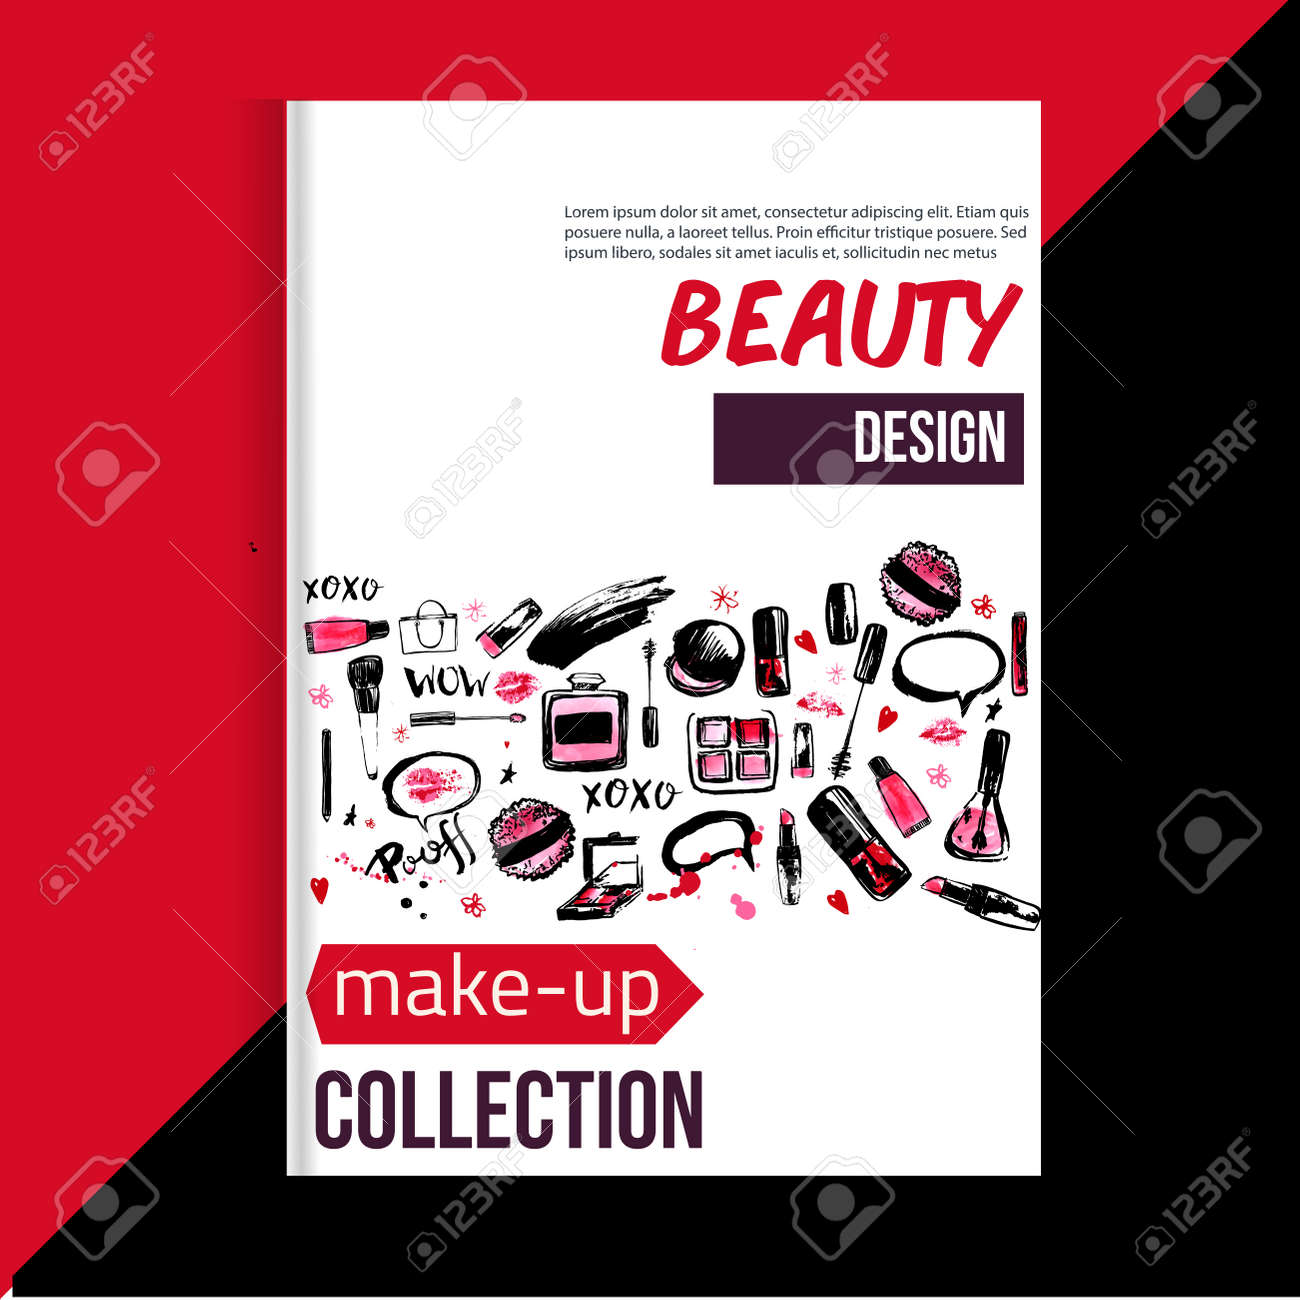 Makeup artist business cards templates free image collections brochure cover template for makeup artist studio business card brochure cover template for makeup artist studio magicingreecefo Images